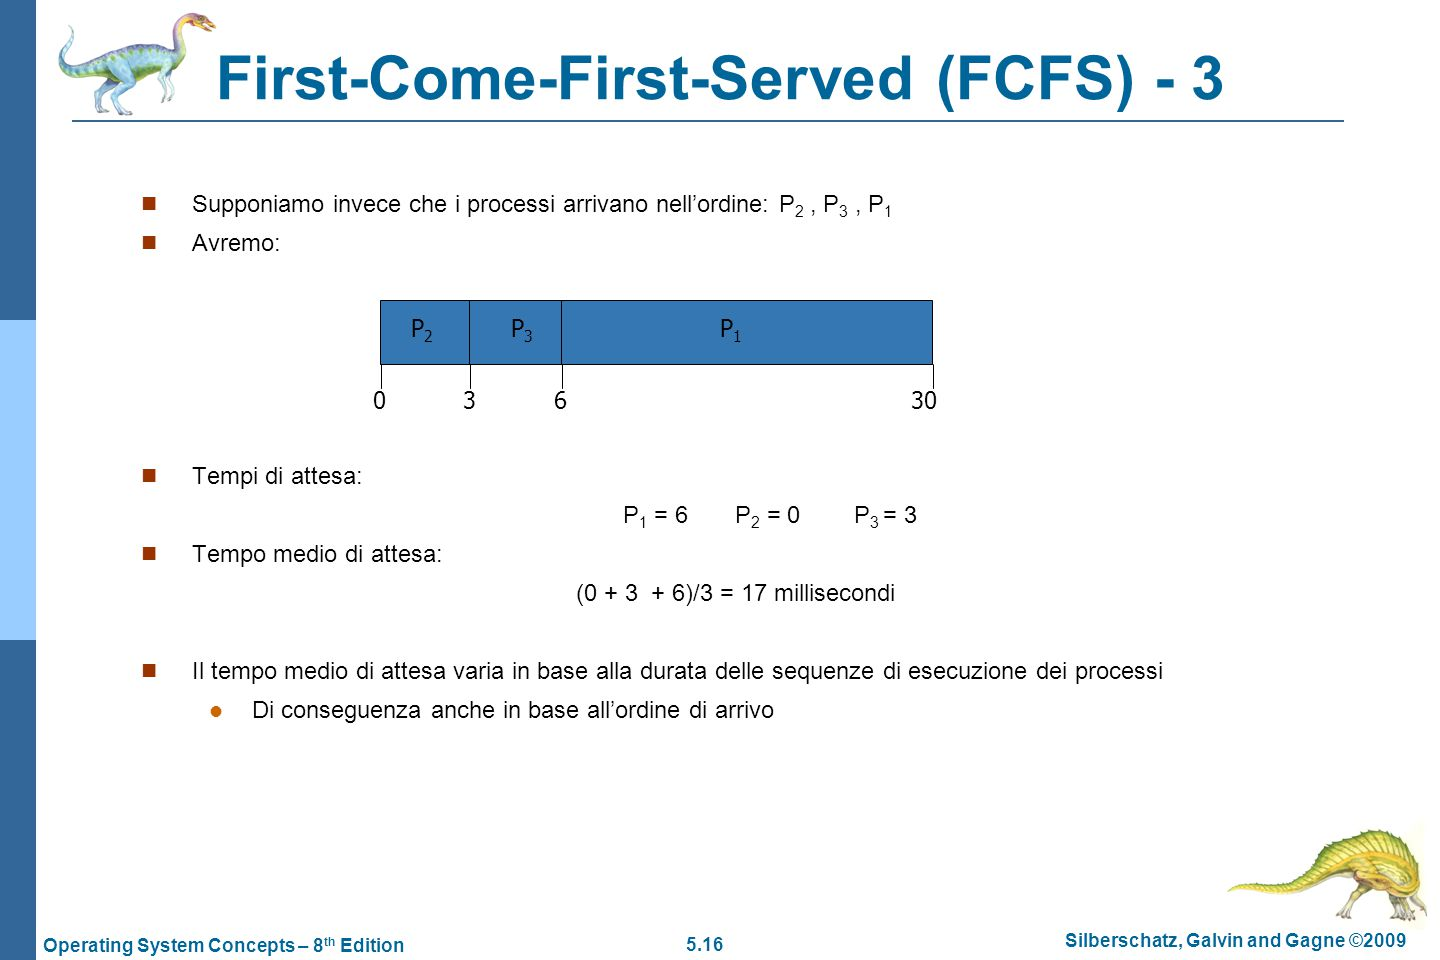 First-Come-First-Served (FCFS) - 3